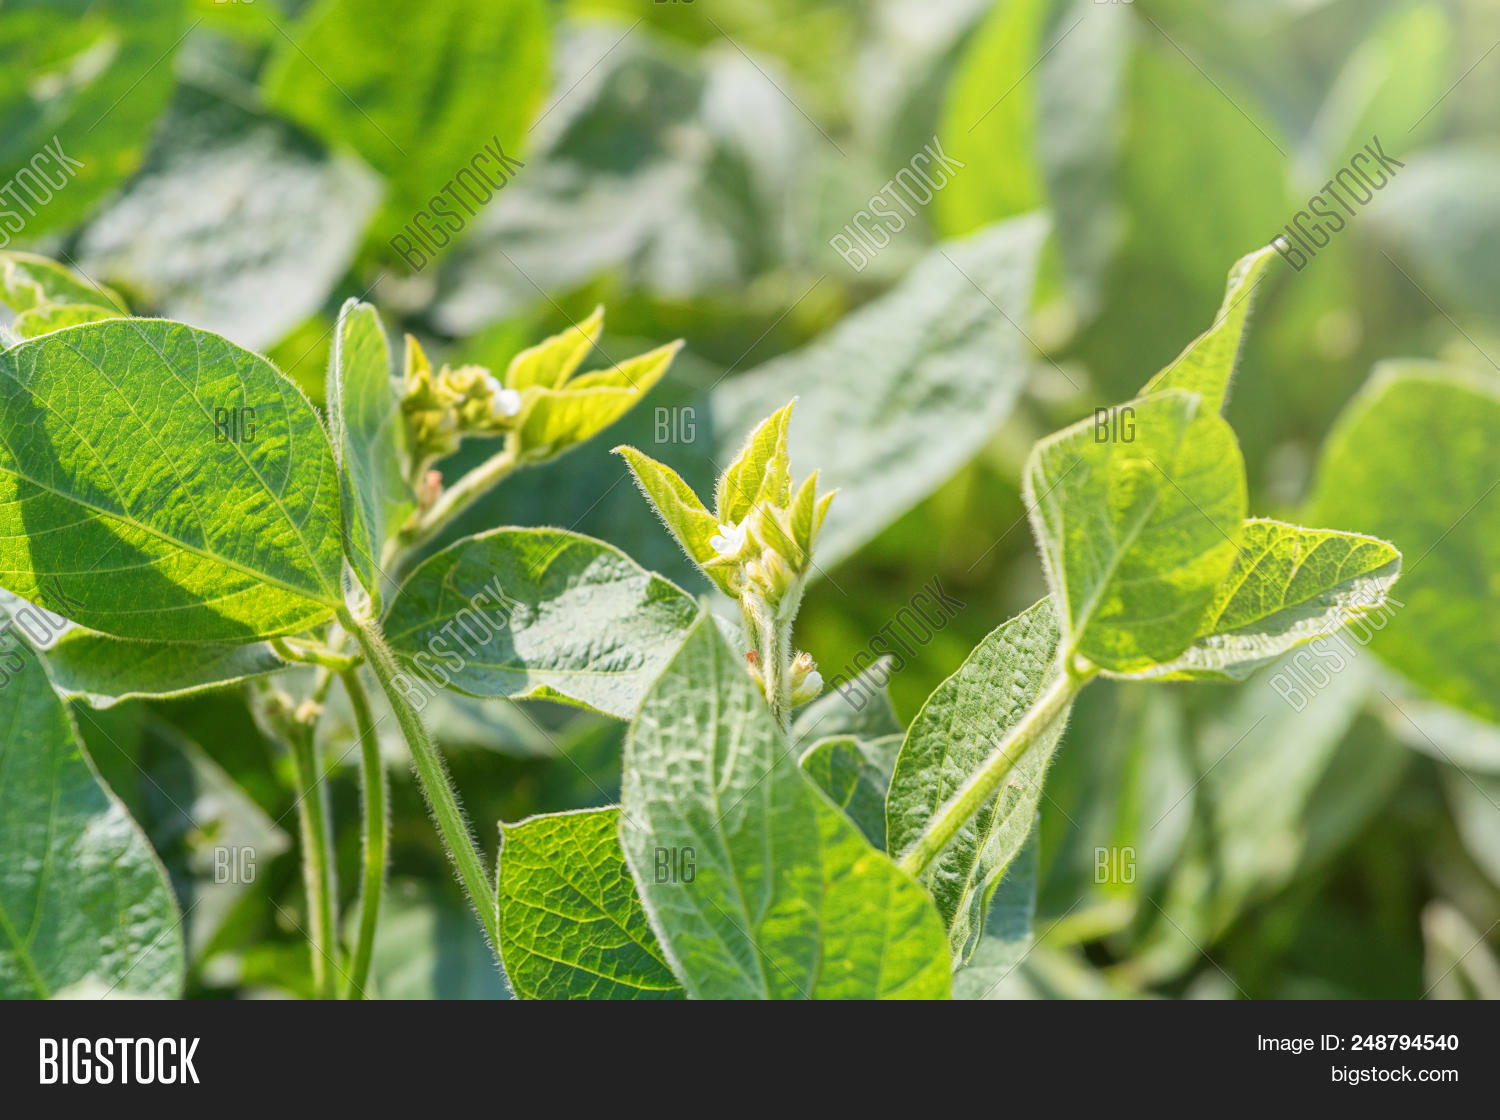 young soybean plant image photo free trial bigstock